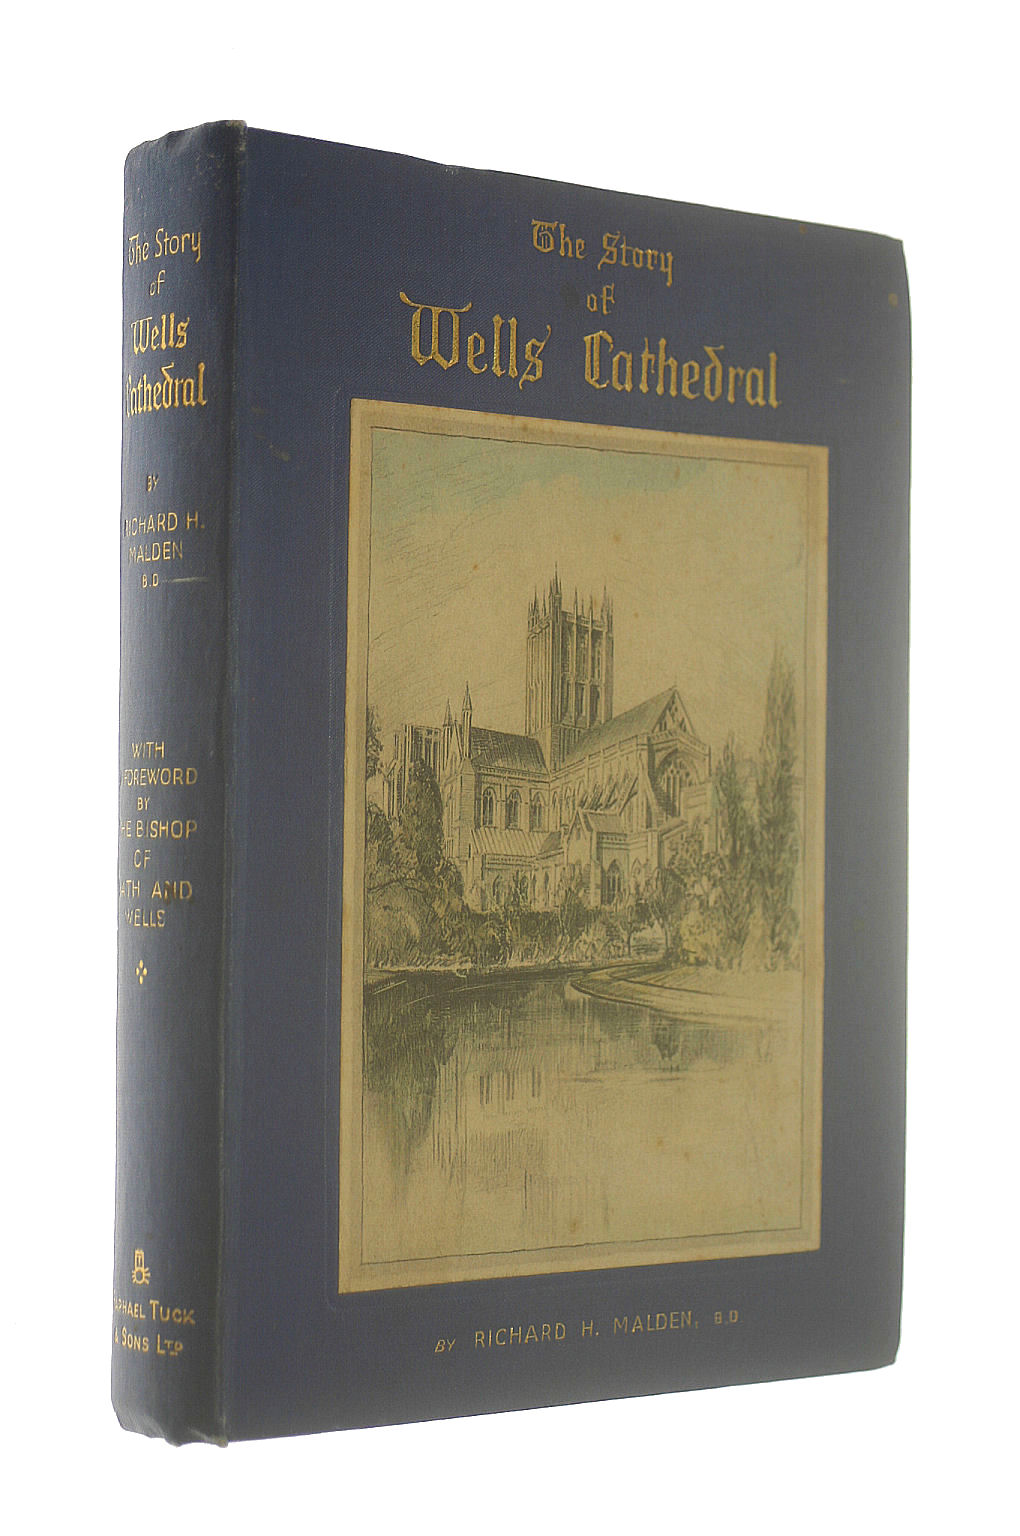 Image for The story of Wells cathedral / by Richard H. Malden, with a foreword by the Bishop of Bath and Wells